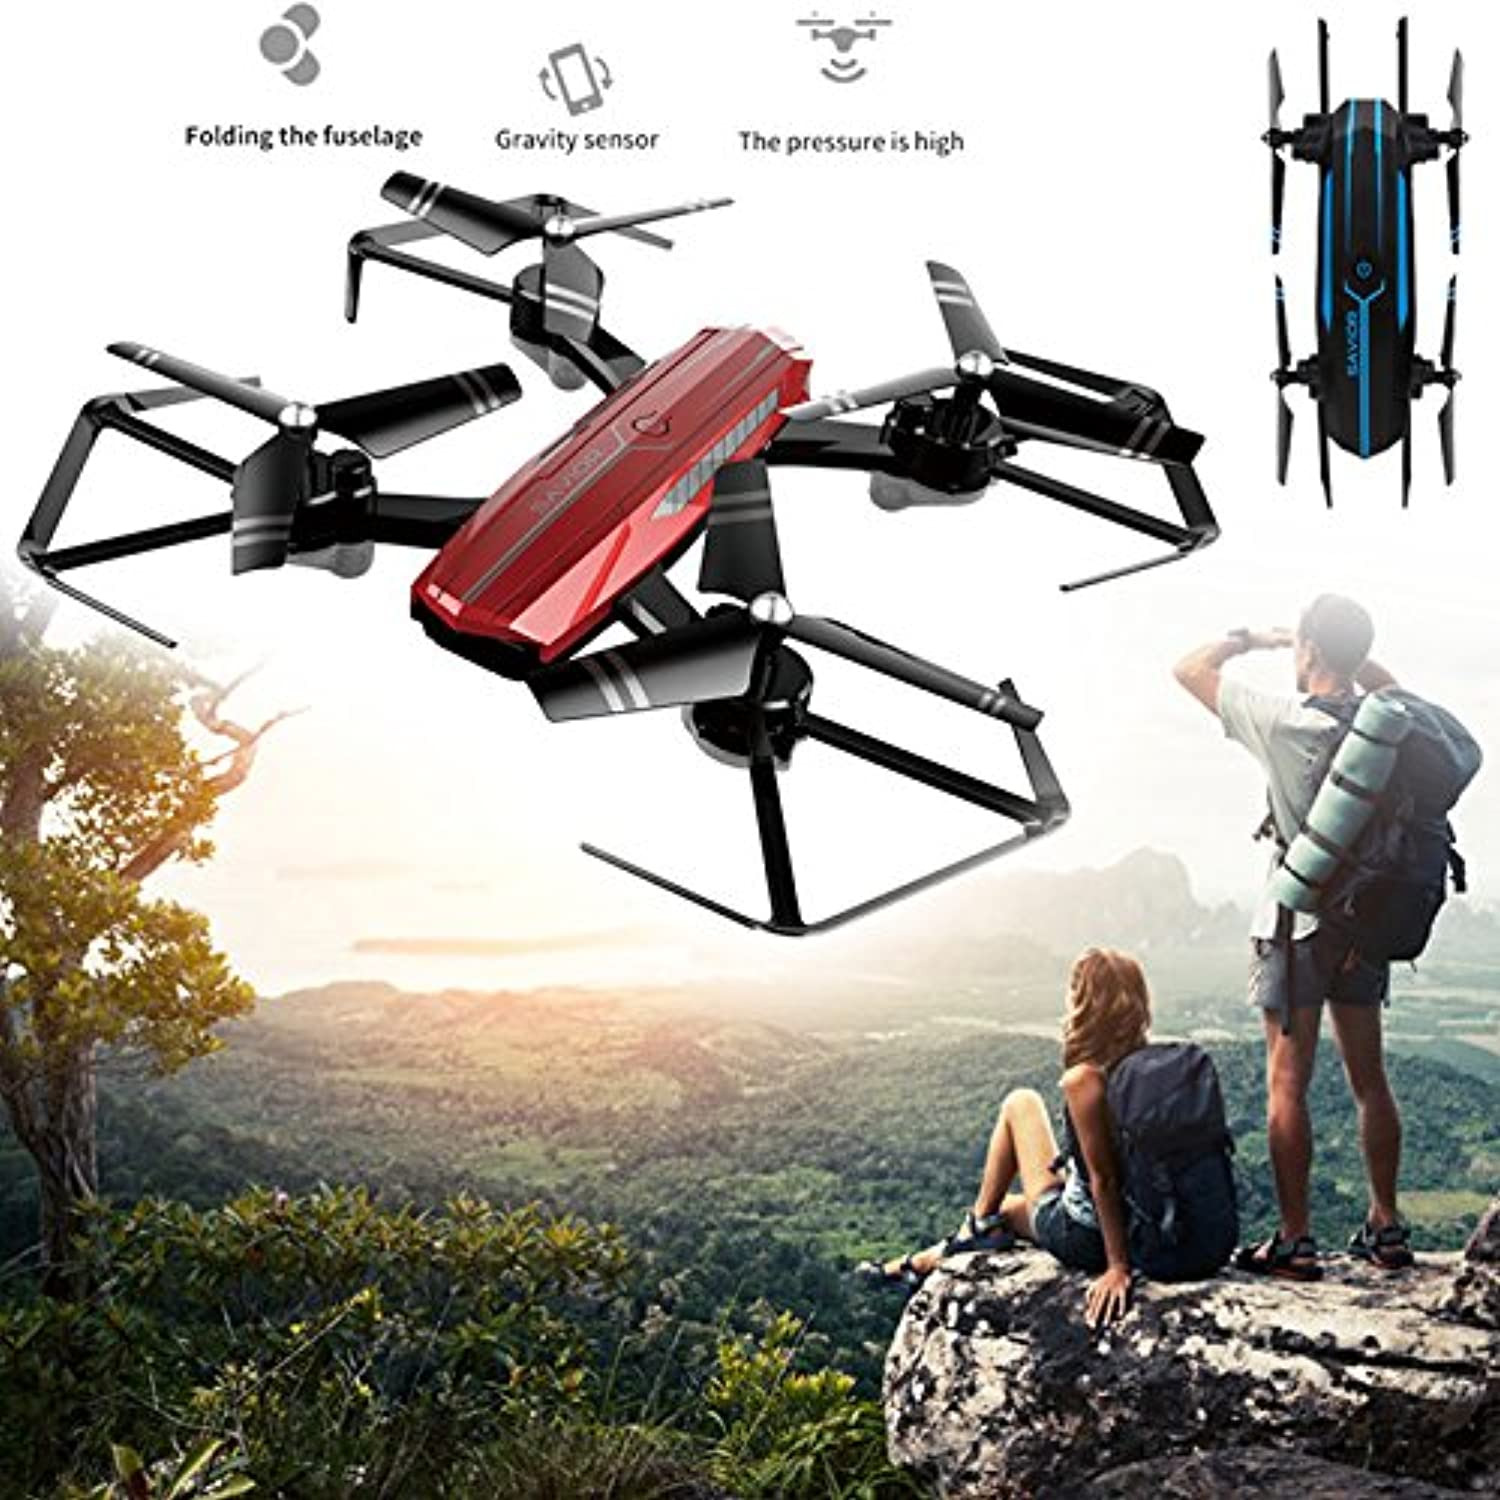 WSWRJY Drones,Drone Camera,Ntelligent Foldable Uav Drone 480P 720P Hd Wide Angle Camera App Remote Wifi 3D Roll-Over One Key Take Off